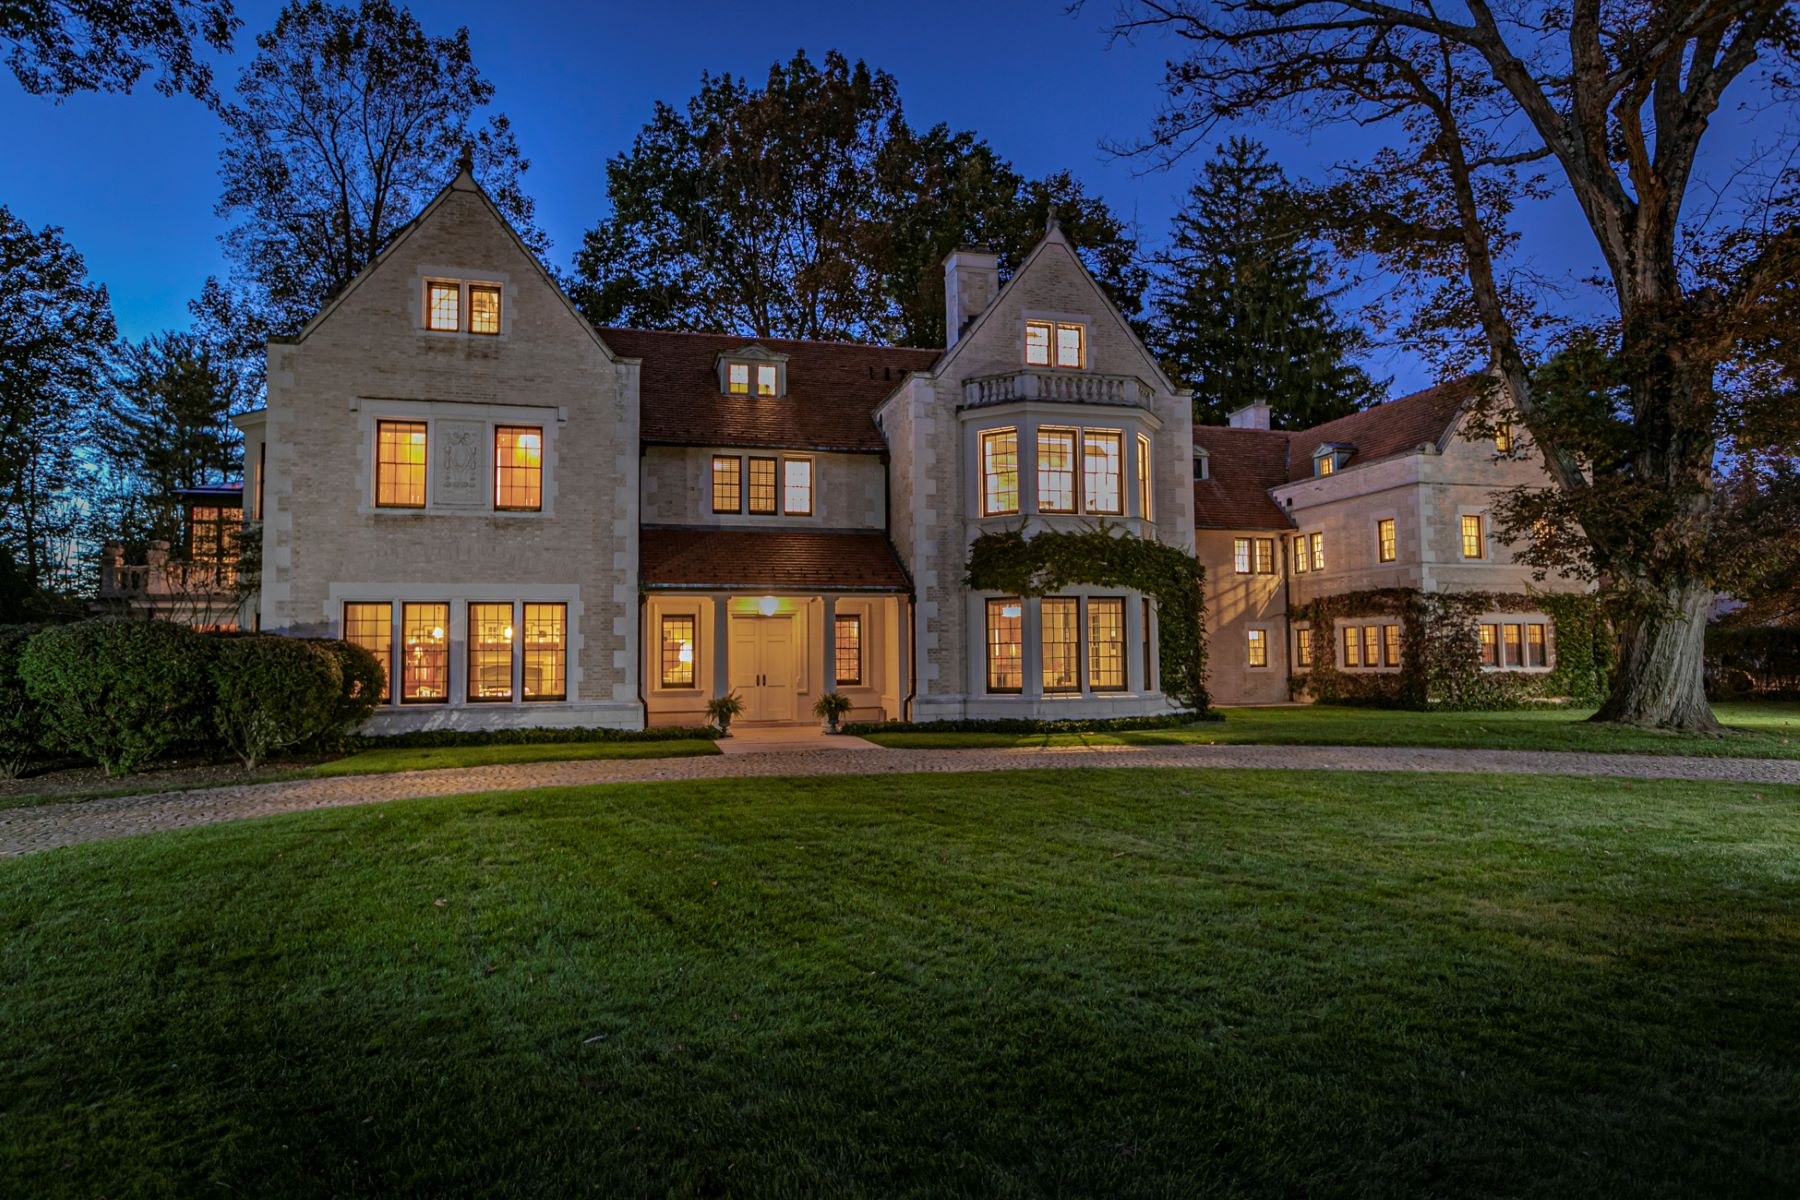 Single Family Homes for Sale at Historic Pyne Mansion 211 Winant Road, Princeton, New Jersey 08540 United States